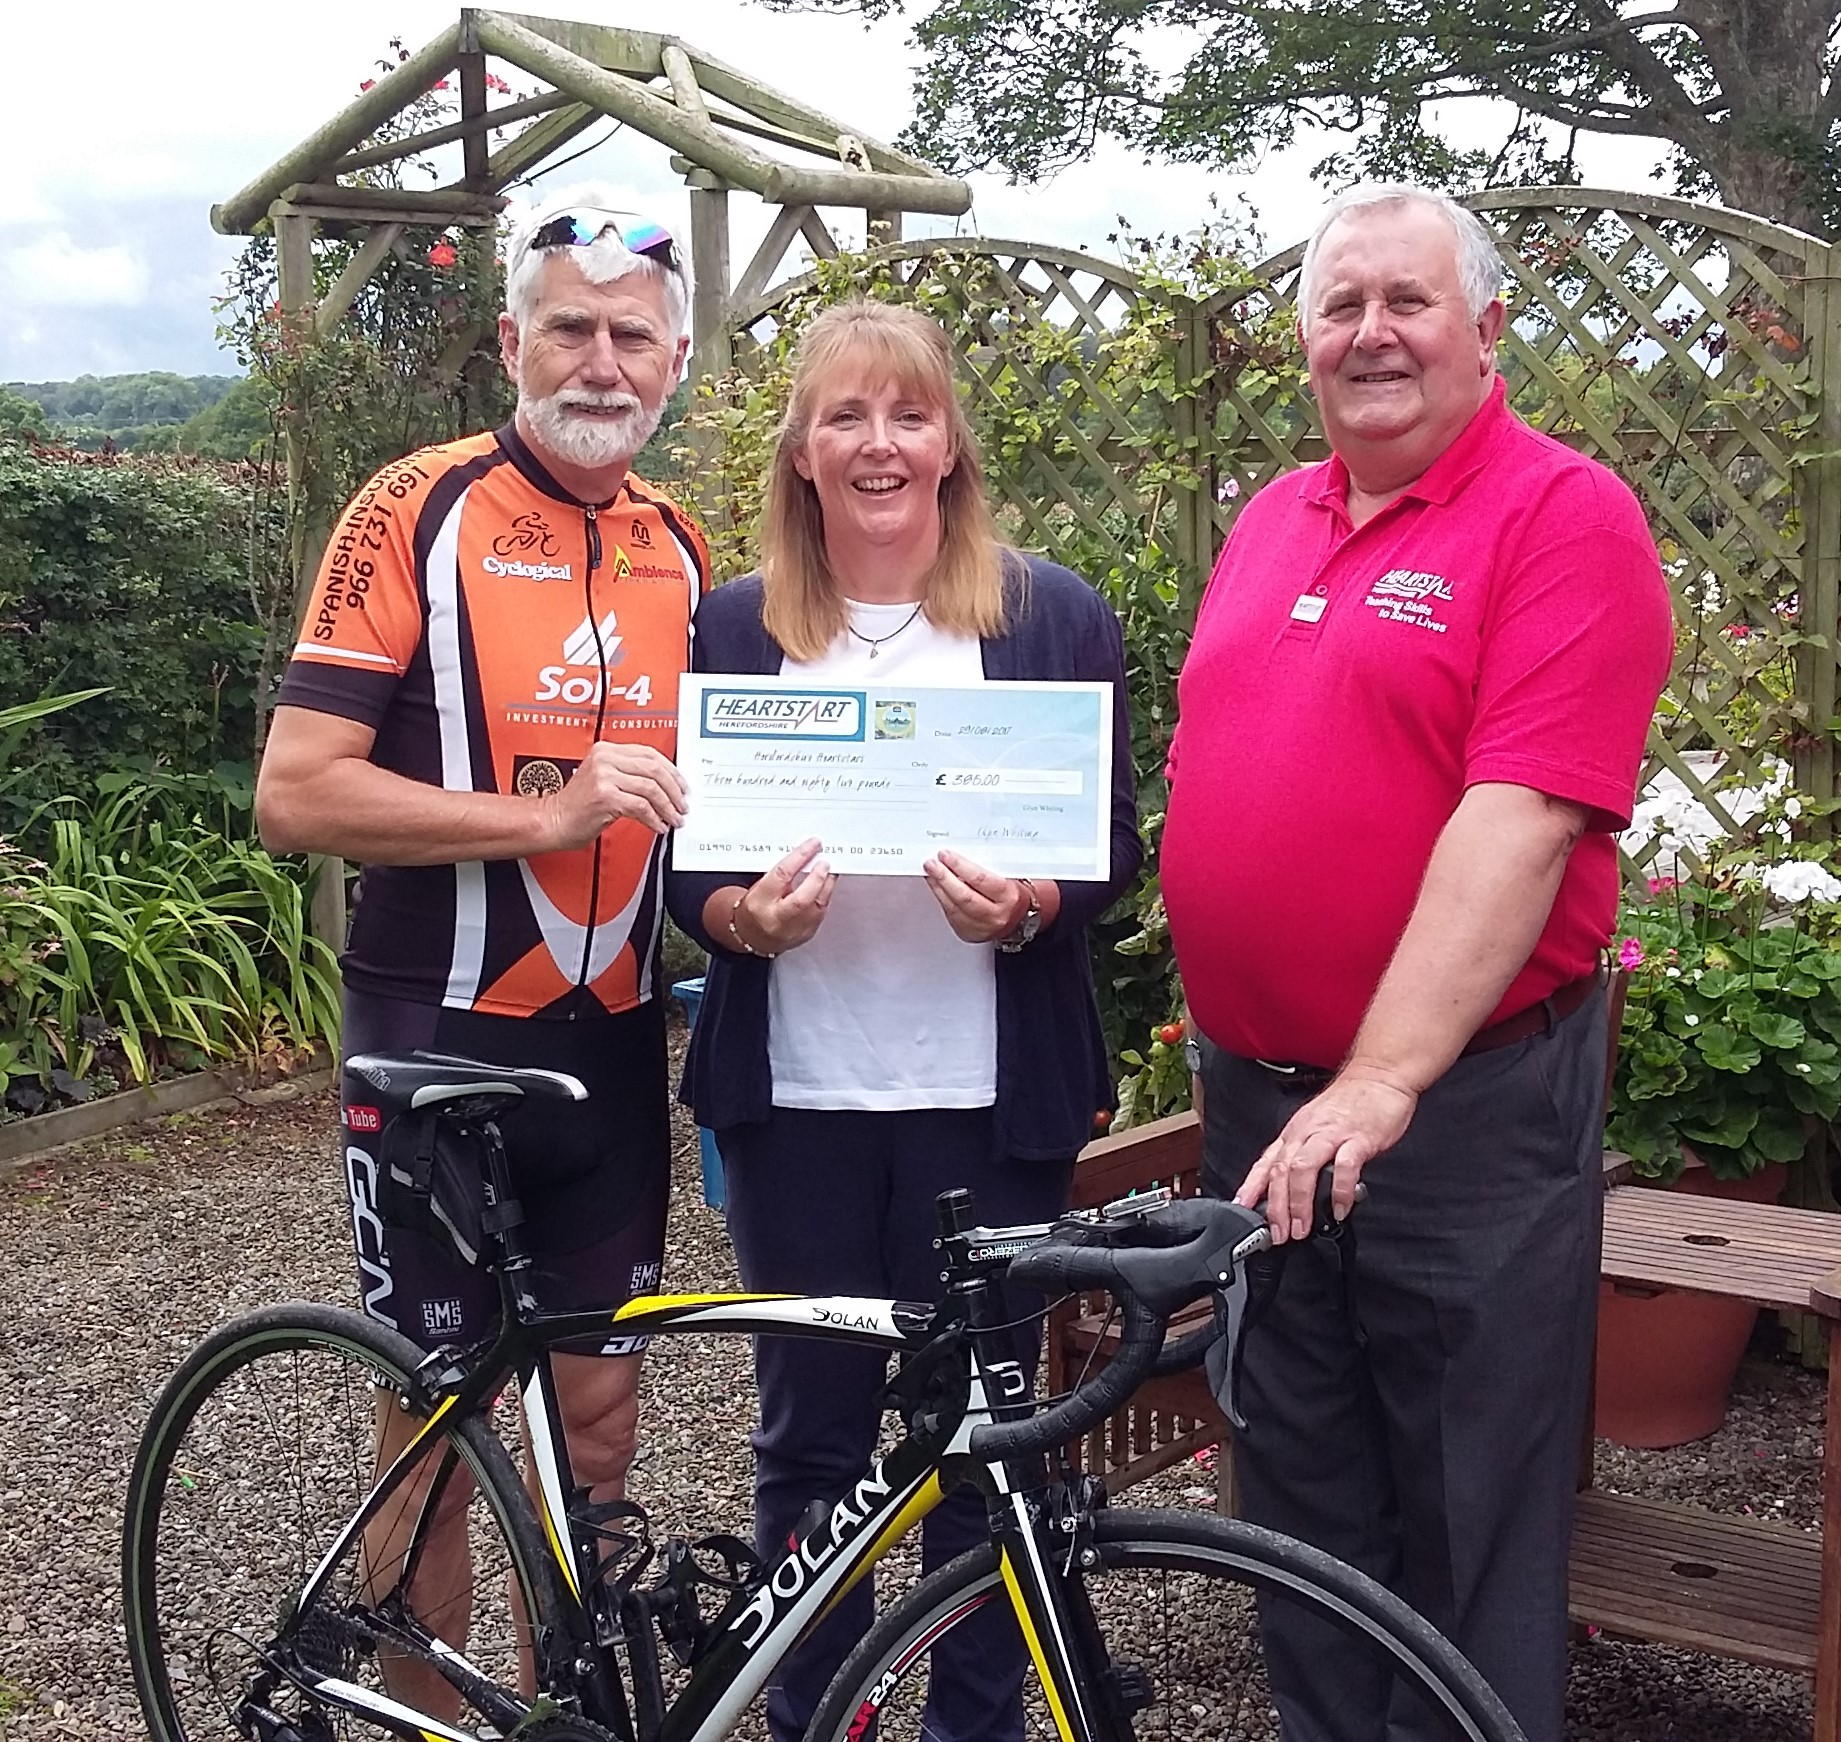 PRESS RELEASE – 100 MILE CYCLE IN AID OF HEREFORDSHIRE HEARTSTART